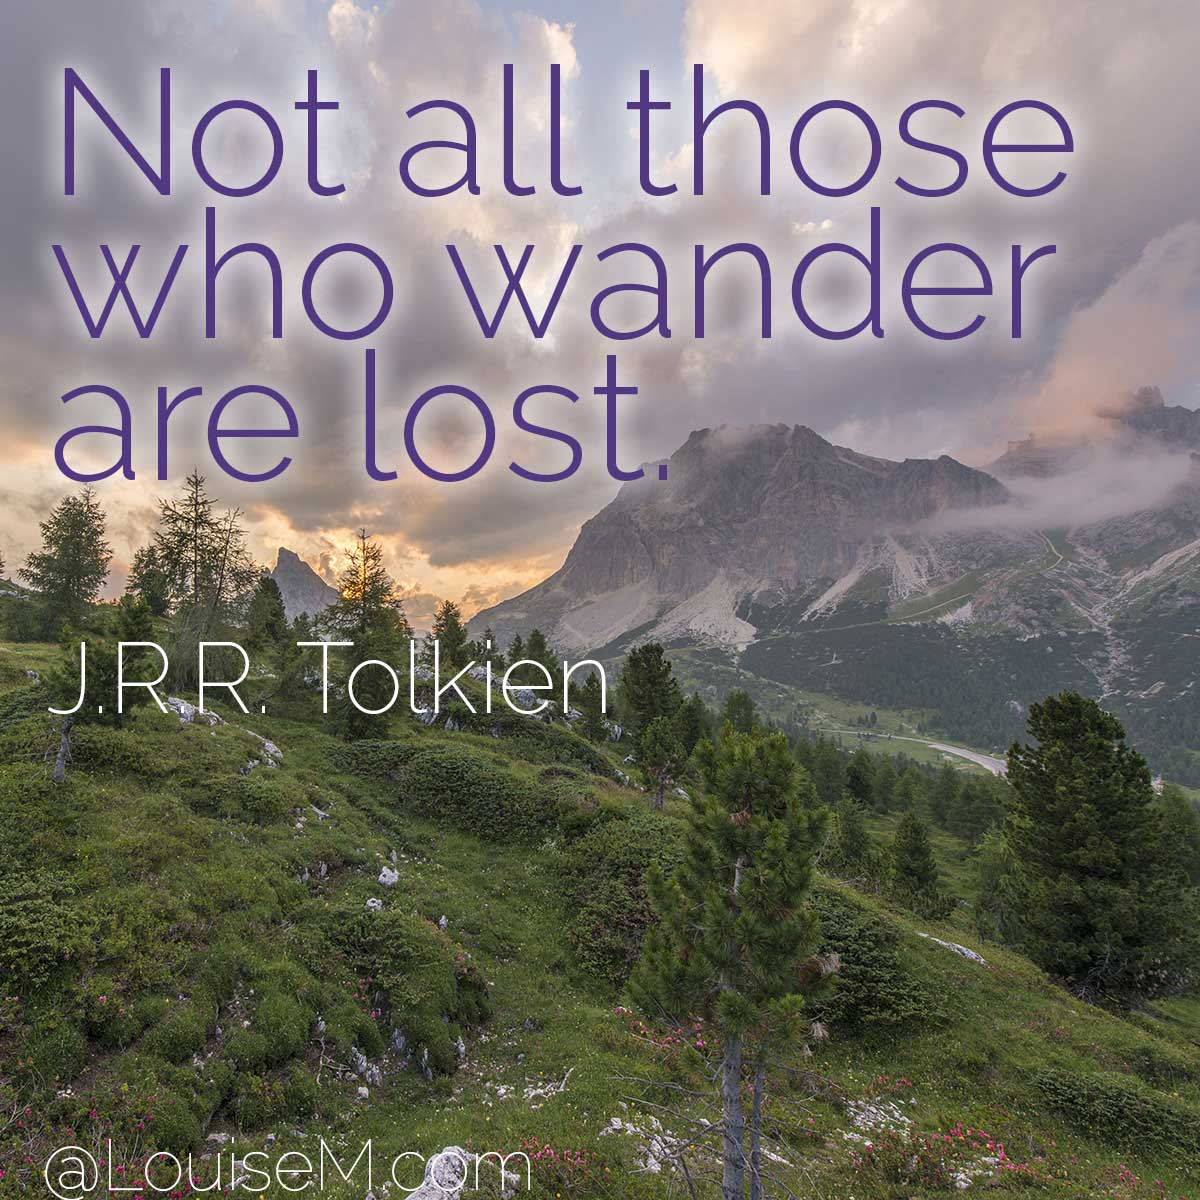 jrr tolkien quote on forest photo.